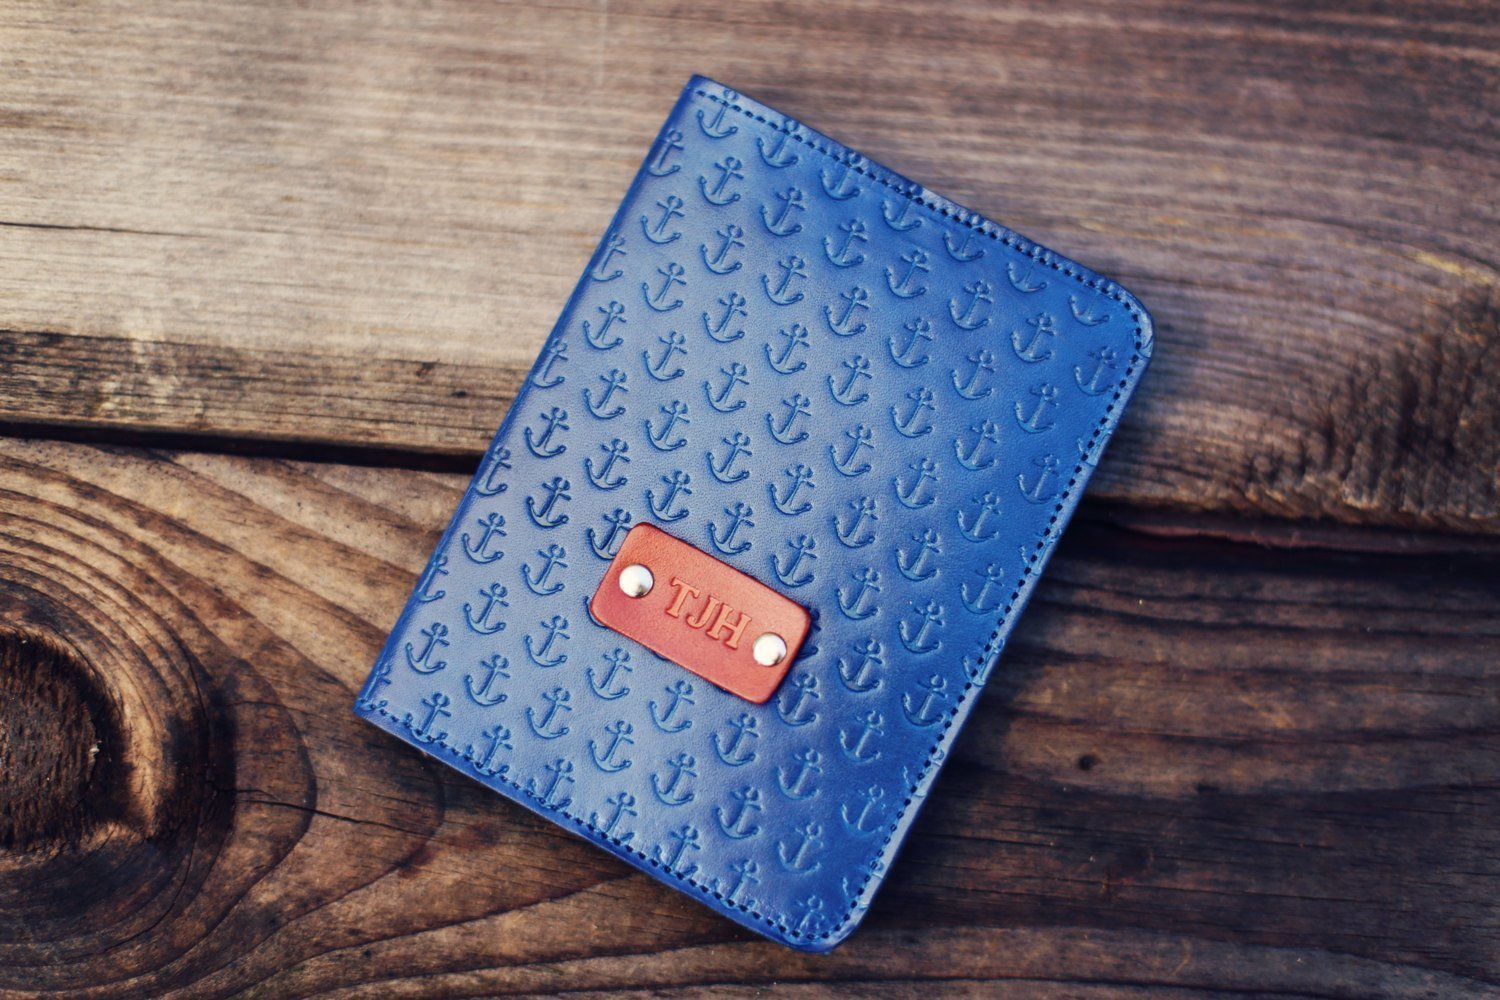 Personalized Leather Passport Cover, Real Leather, nautical, holder, wanderlust, travel, Anchor pattern Passport Cover, handmade, Custom text, name initials